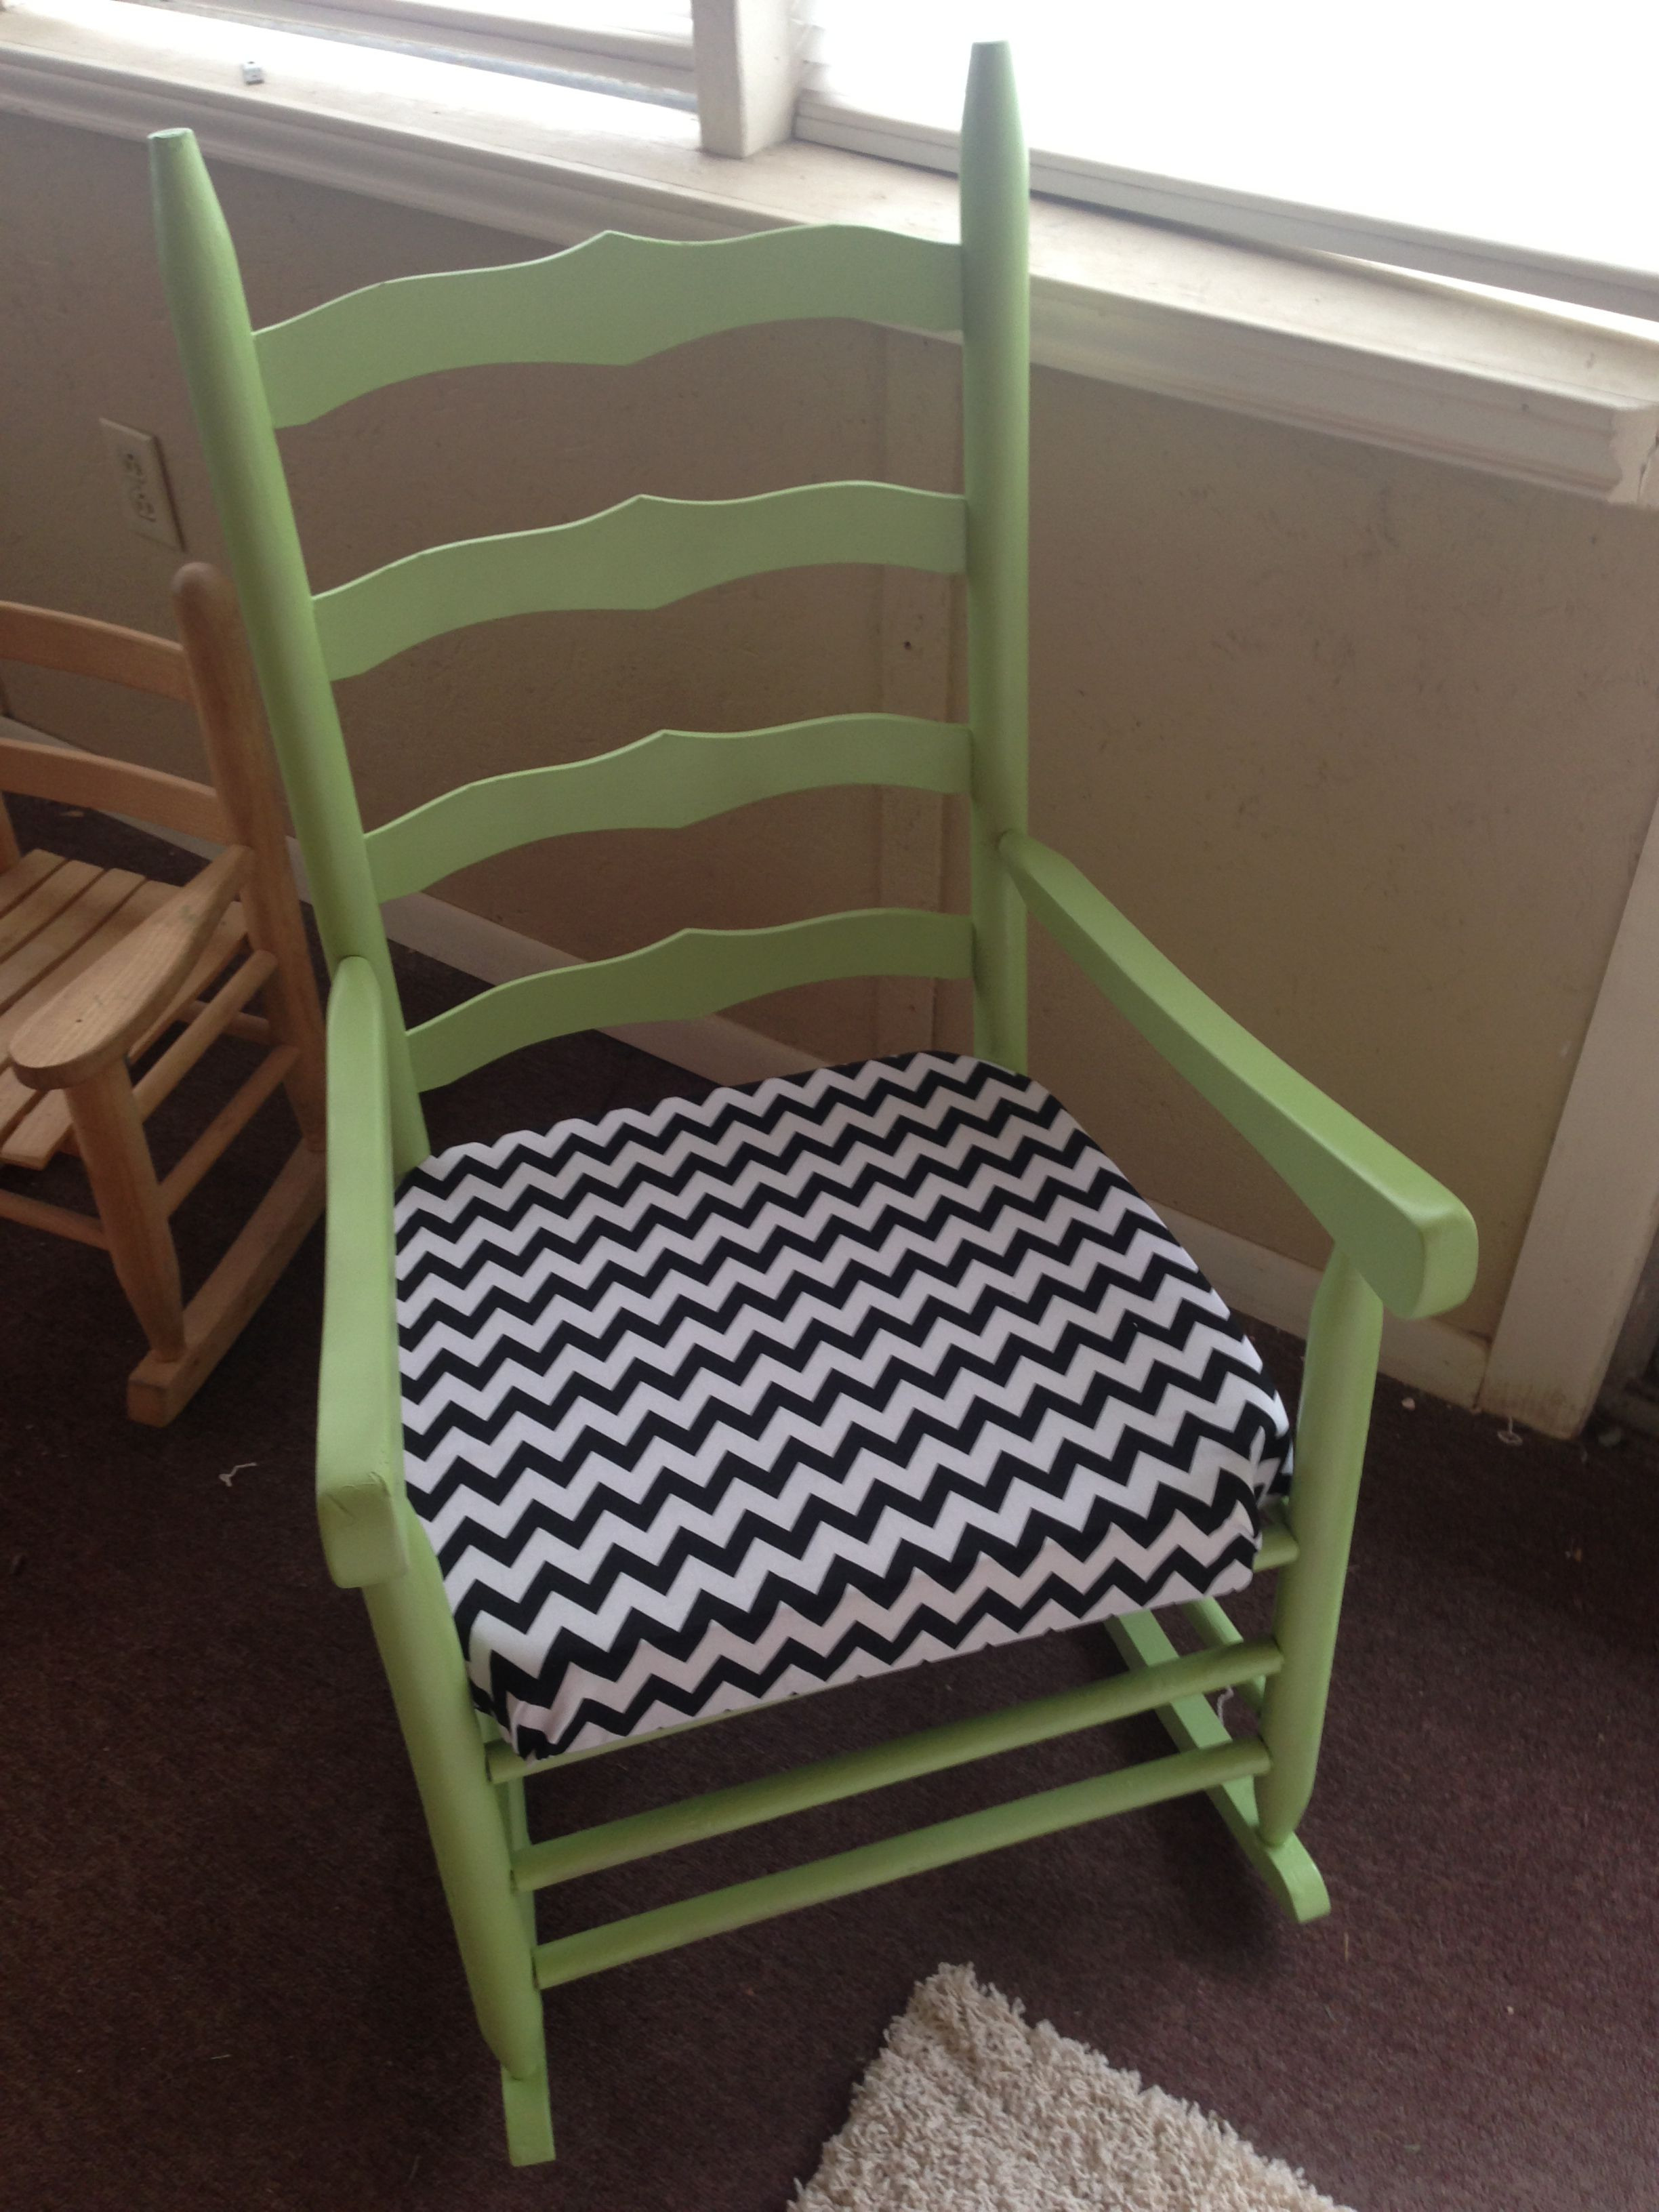 Awesome Adorable Freshly Painted Wooden Rocking Chair Cushion Added Gmtry Best Dining Table And Chair Ideas Images Gmtryco